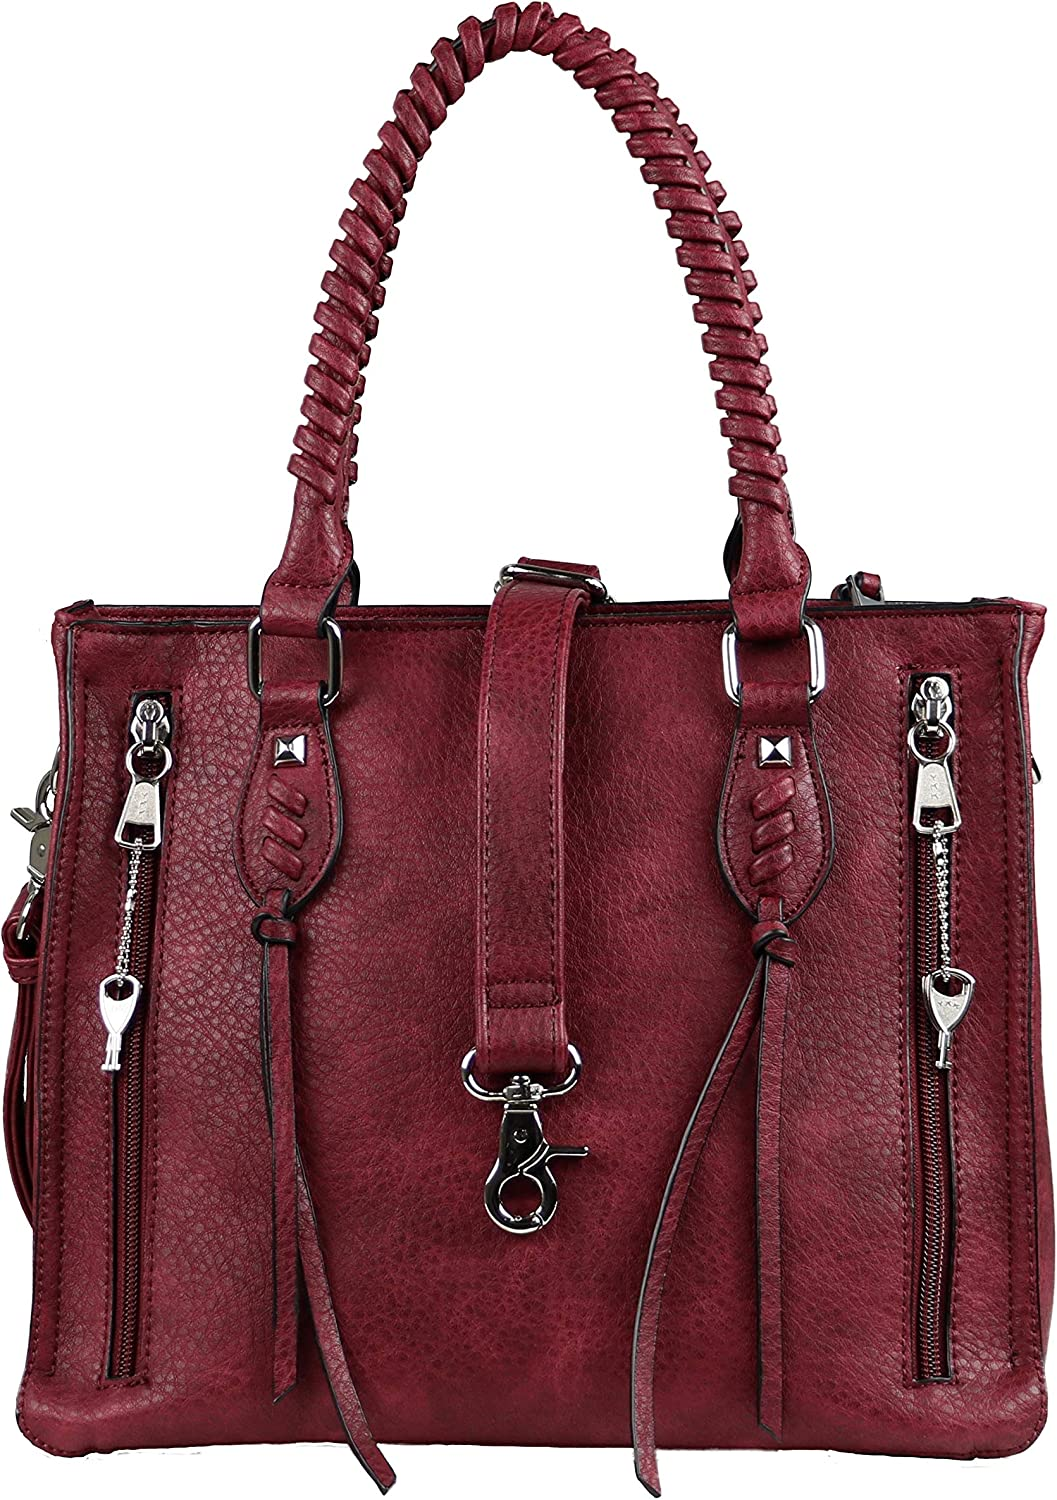 Concealed Carry Weapon Purse YKK Locking Amy Studded Satchel by Lady Conceal